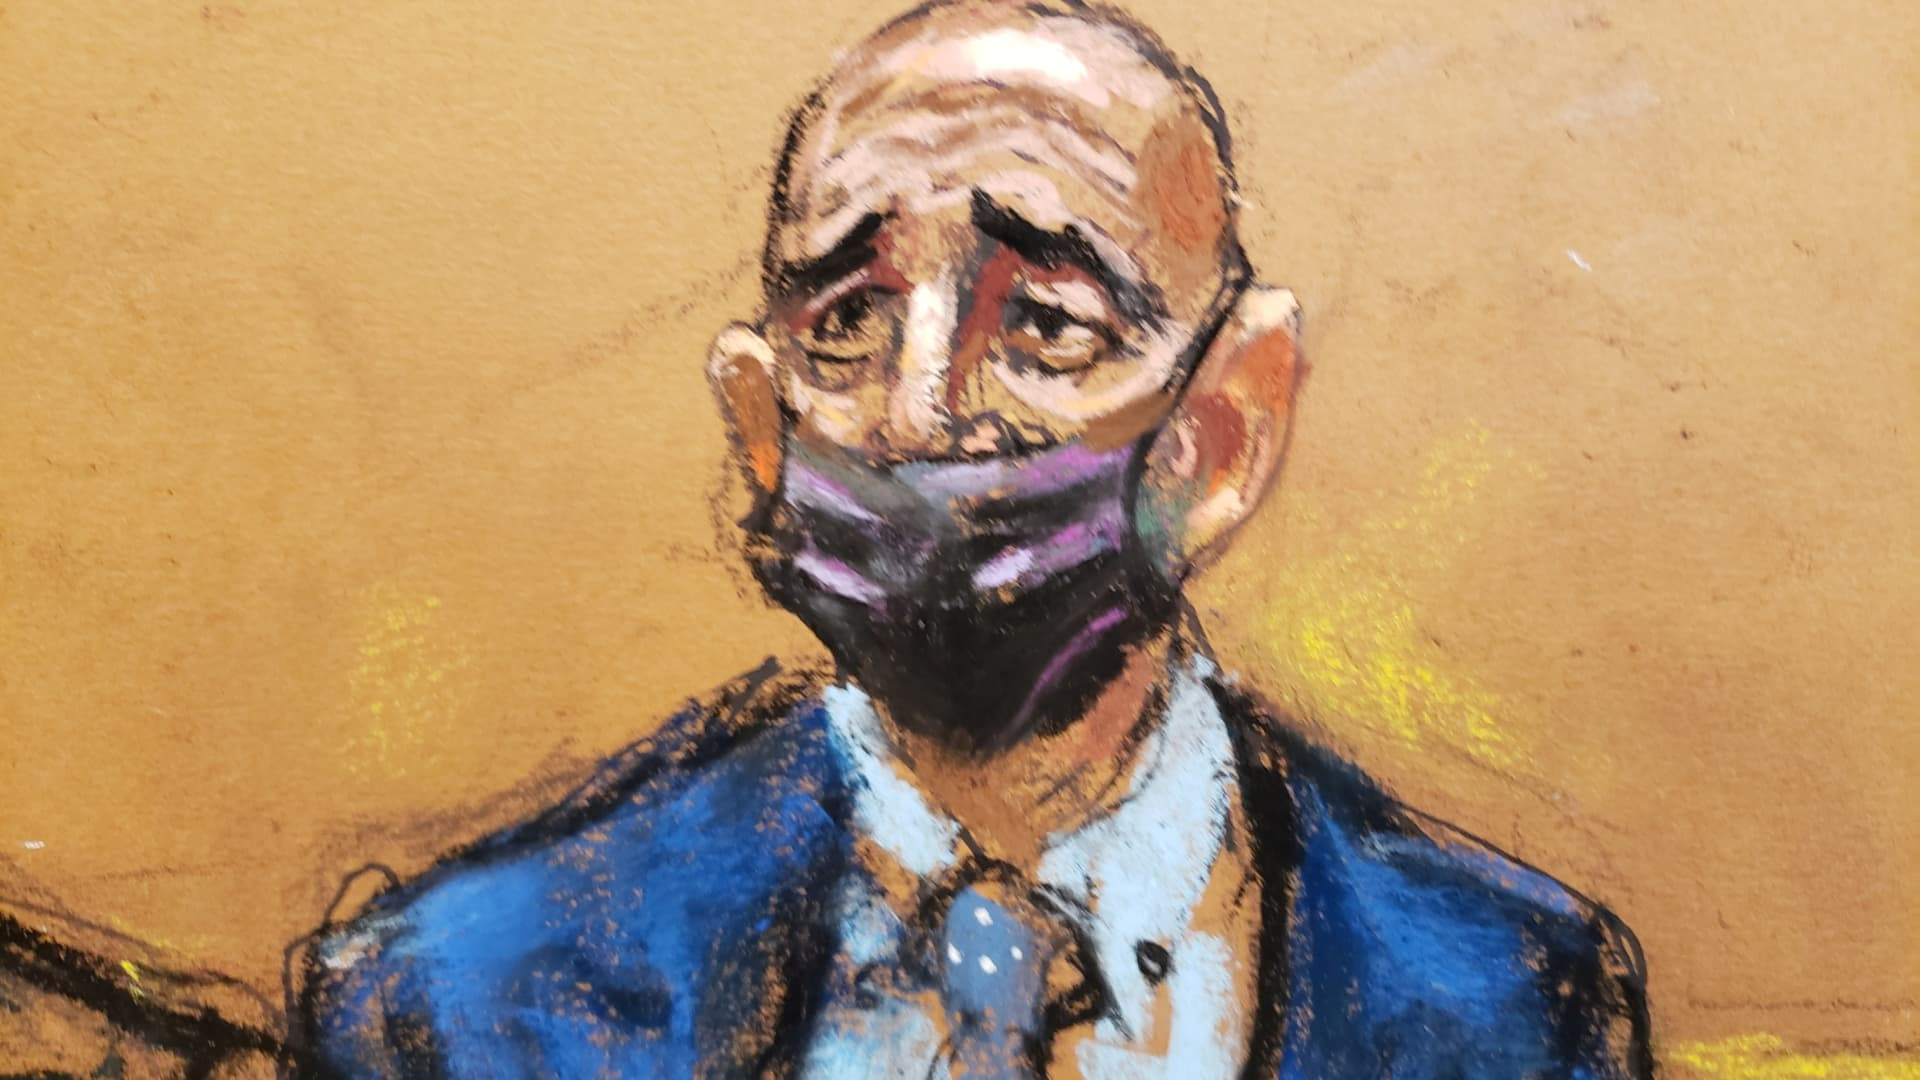 Thomas Barrack, a billionaire friend of Donald Trump who chaired the former president's inaugural fund, stands during his arraignment hearing at the Brooklyn Federal Courthouse in Brooklyn, New York, U.S., July 26, 2021 in this courtroom sketch.